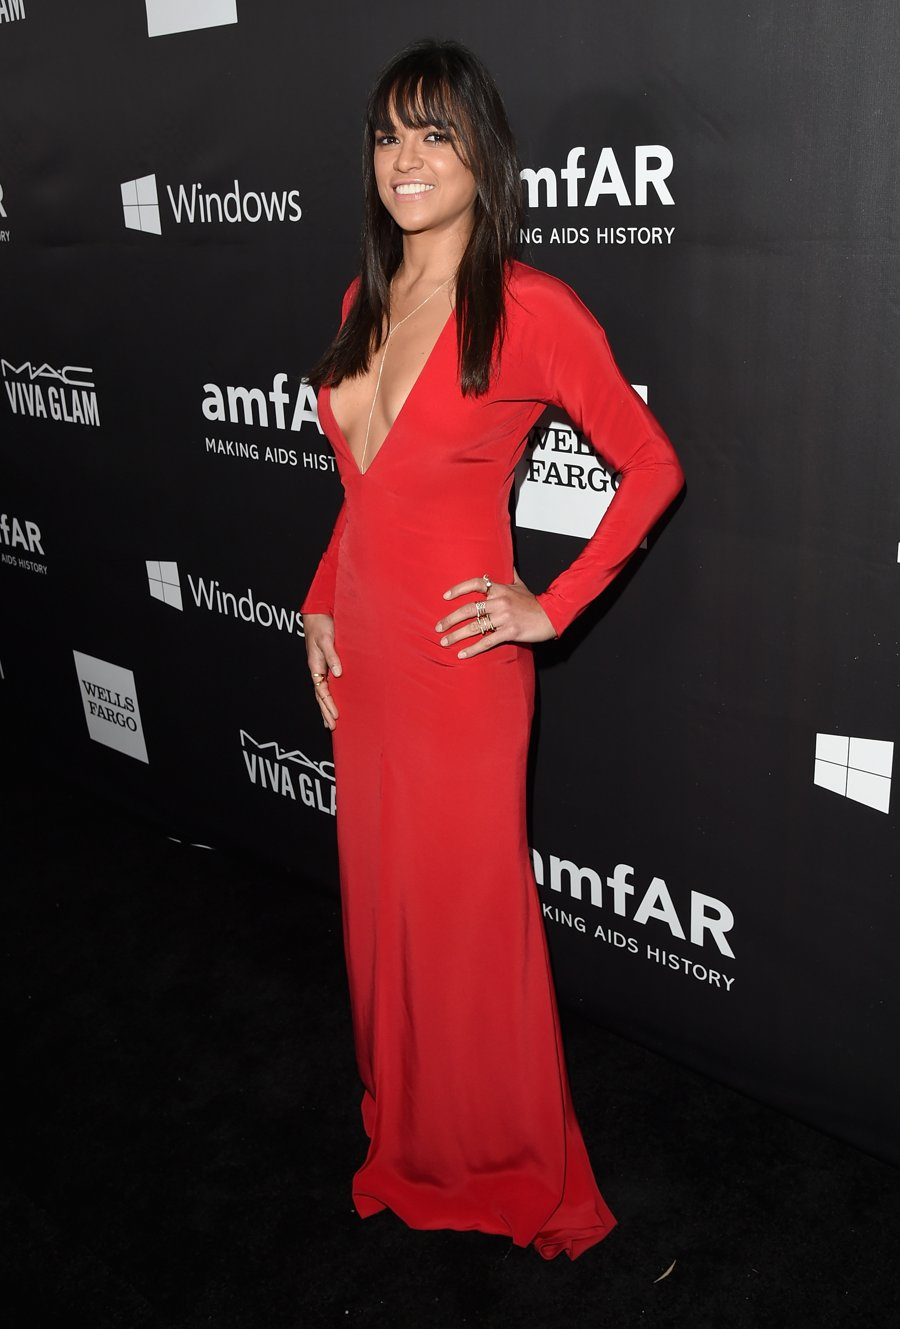 Michelle Rodriguez - Lady in Red's Fit Figure